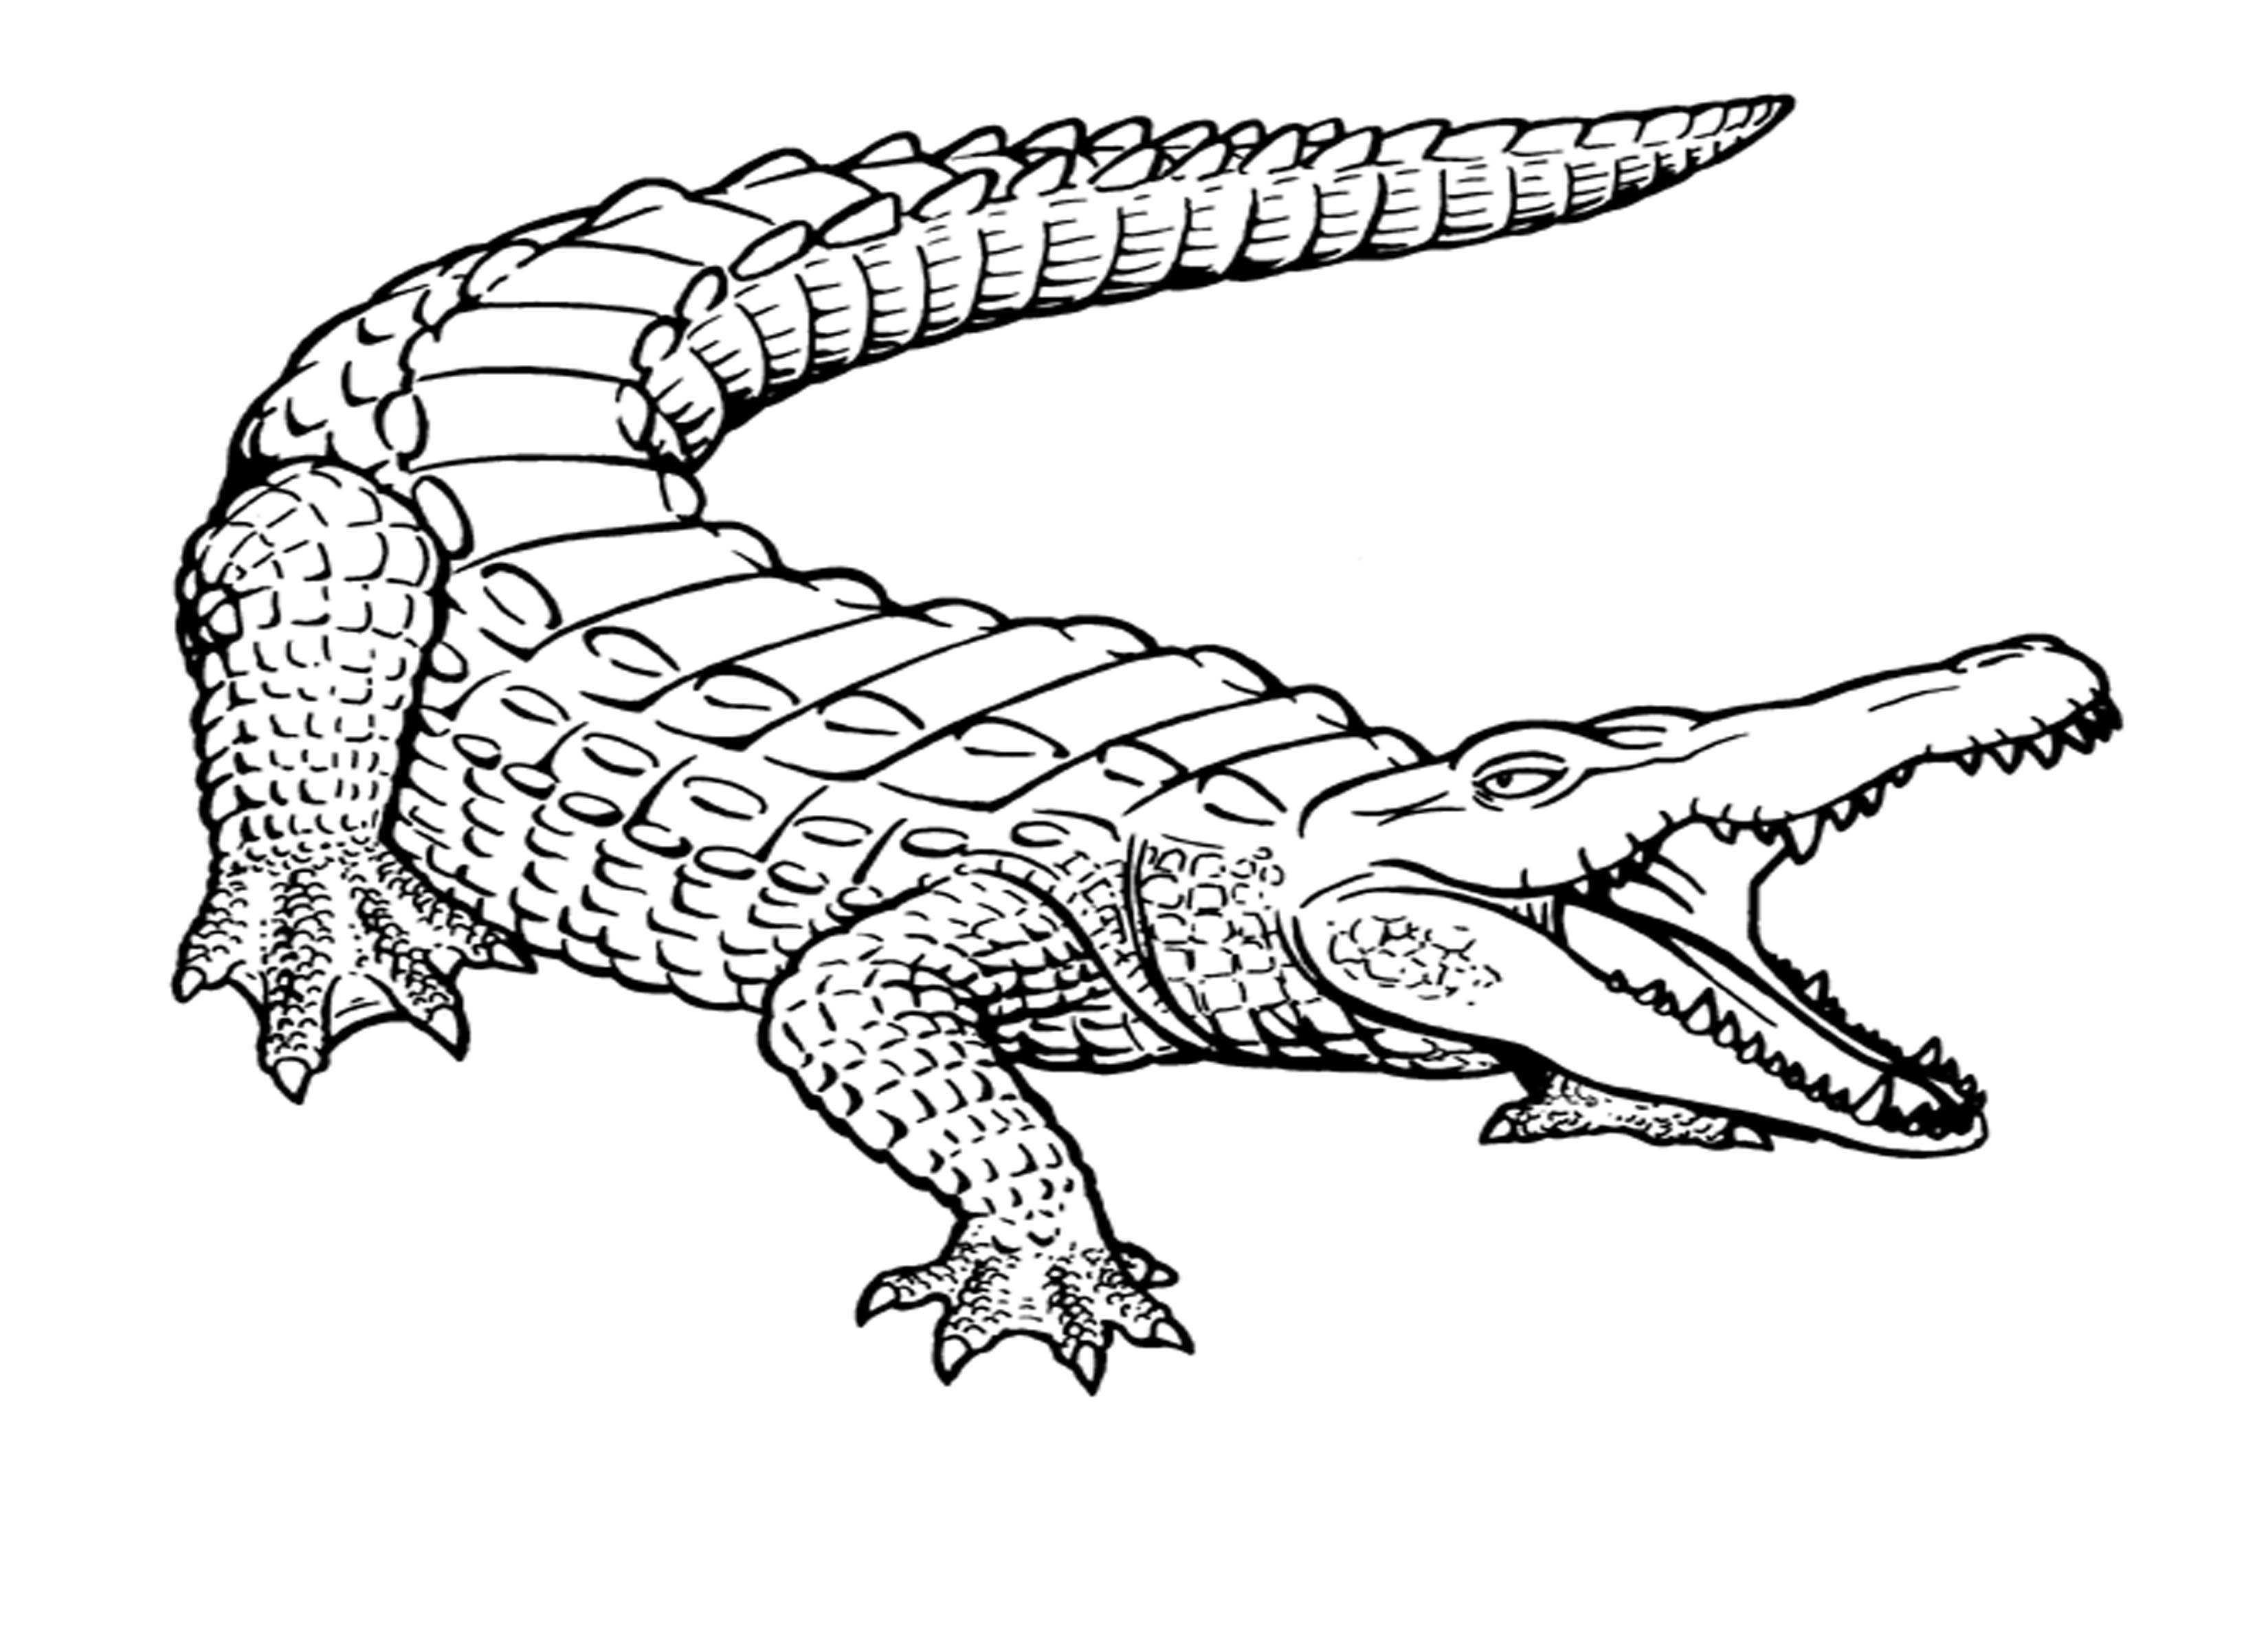 crocodile coloring sheet free coloring pages crocodiles crocodile coloring sheet